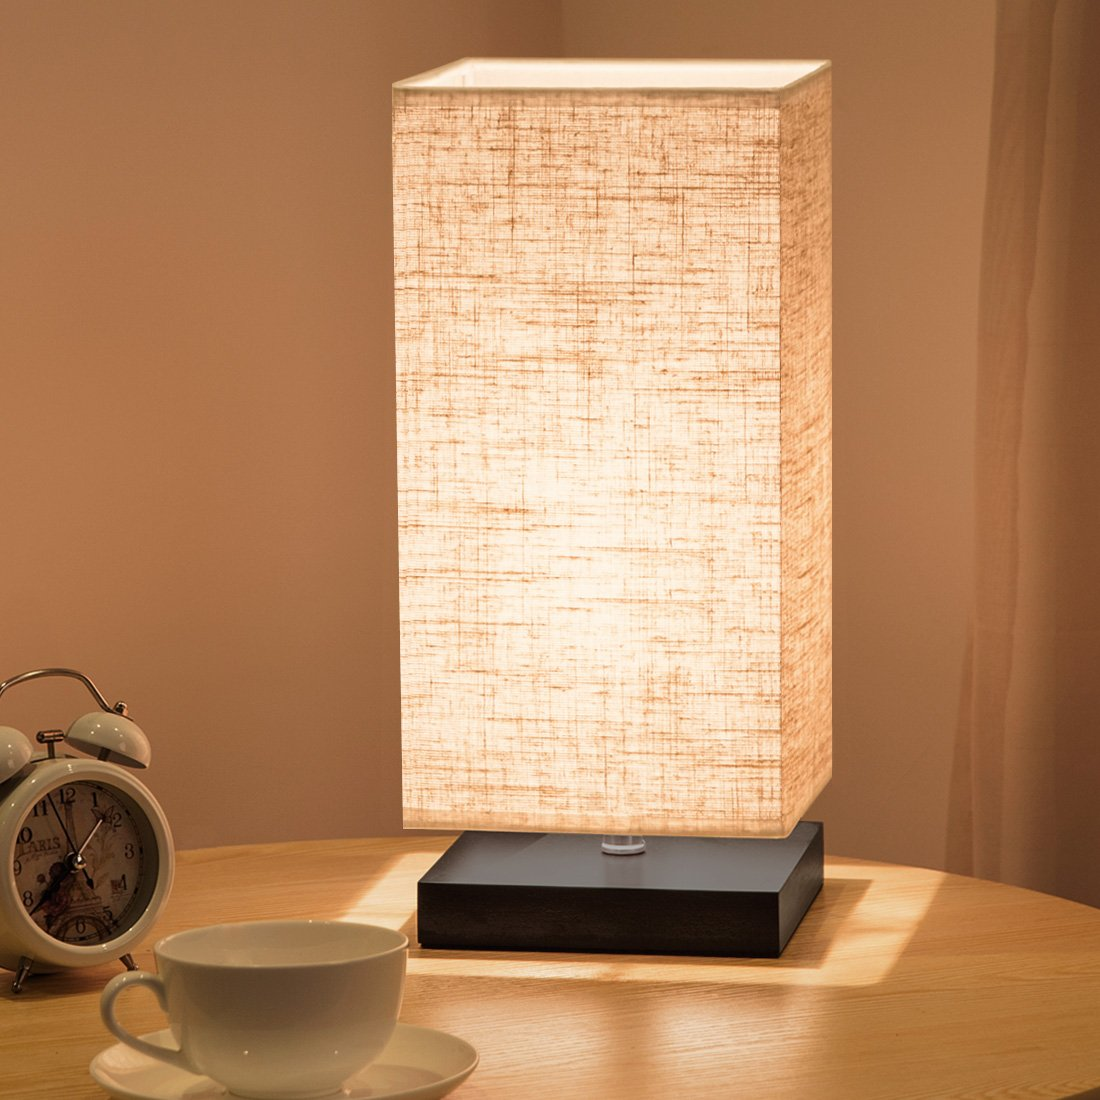 ZEEFO Simple Table Lamp Bedside Desk Lamp With Fabric Shade and Solid Wood for Bedroom, Dresser, Living Room, Baby Room, College Dorm, Coffee Table, Bookcase (square) by ZEEFO (Image #6)